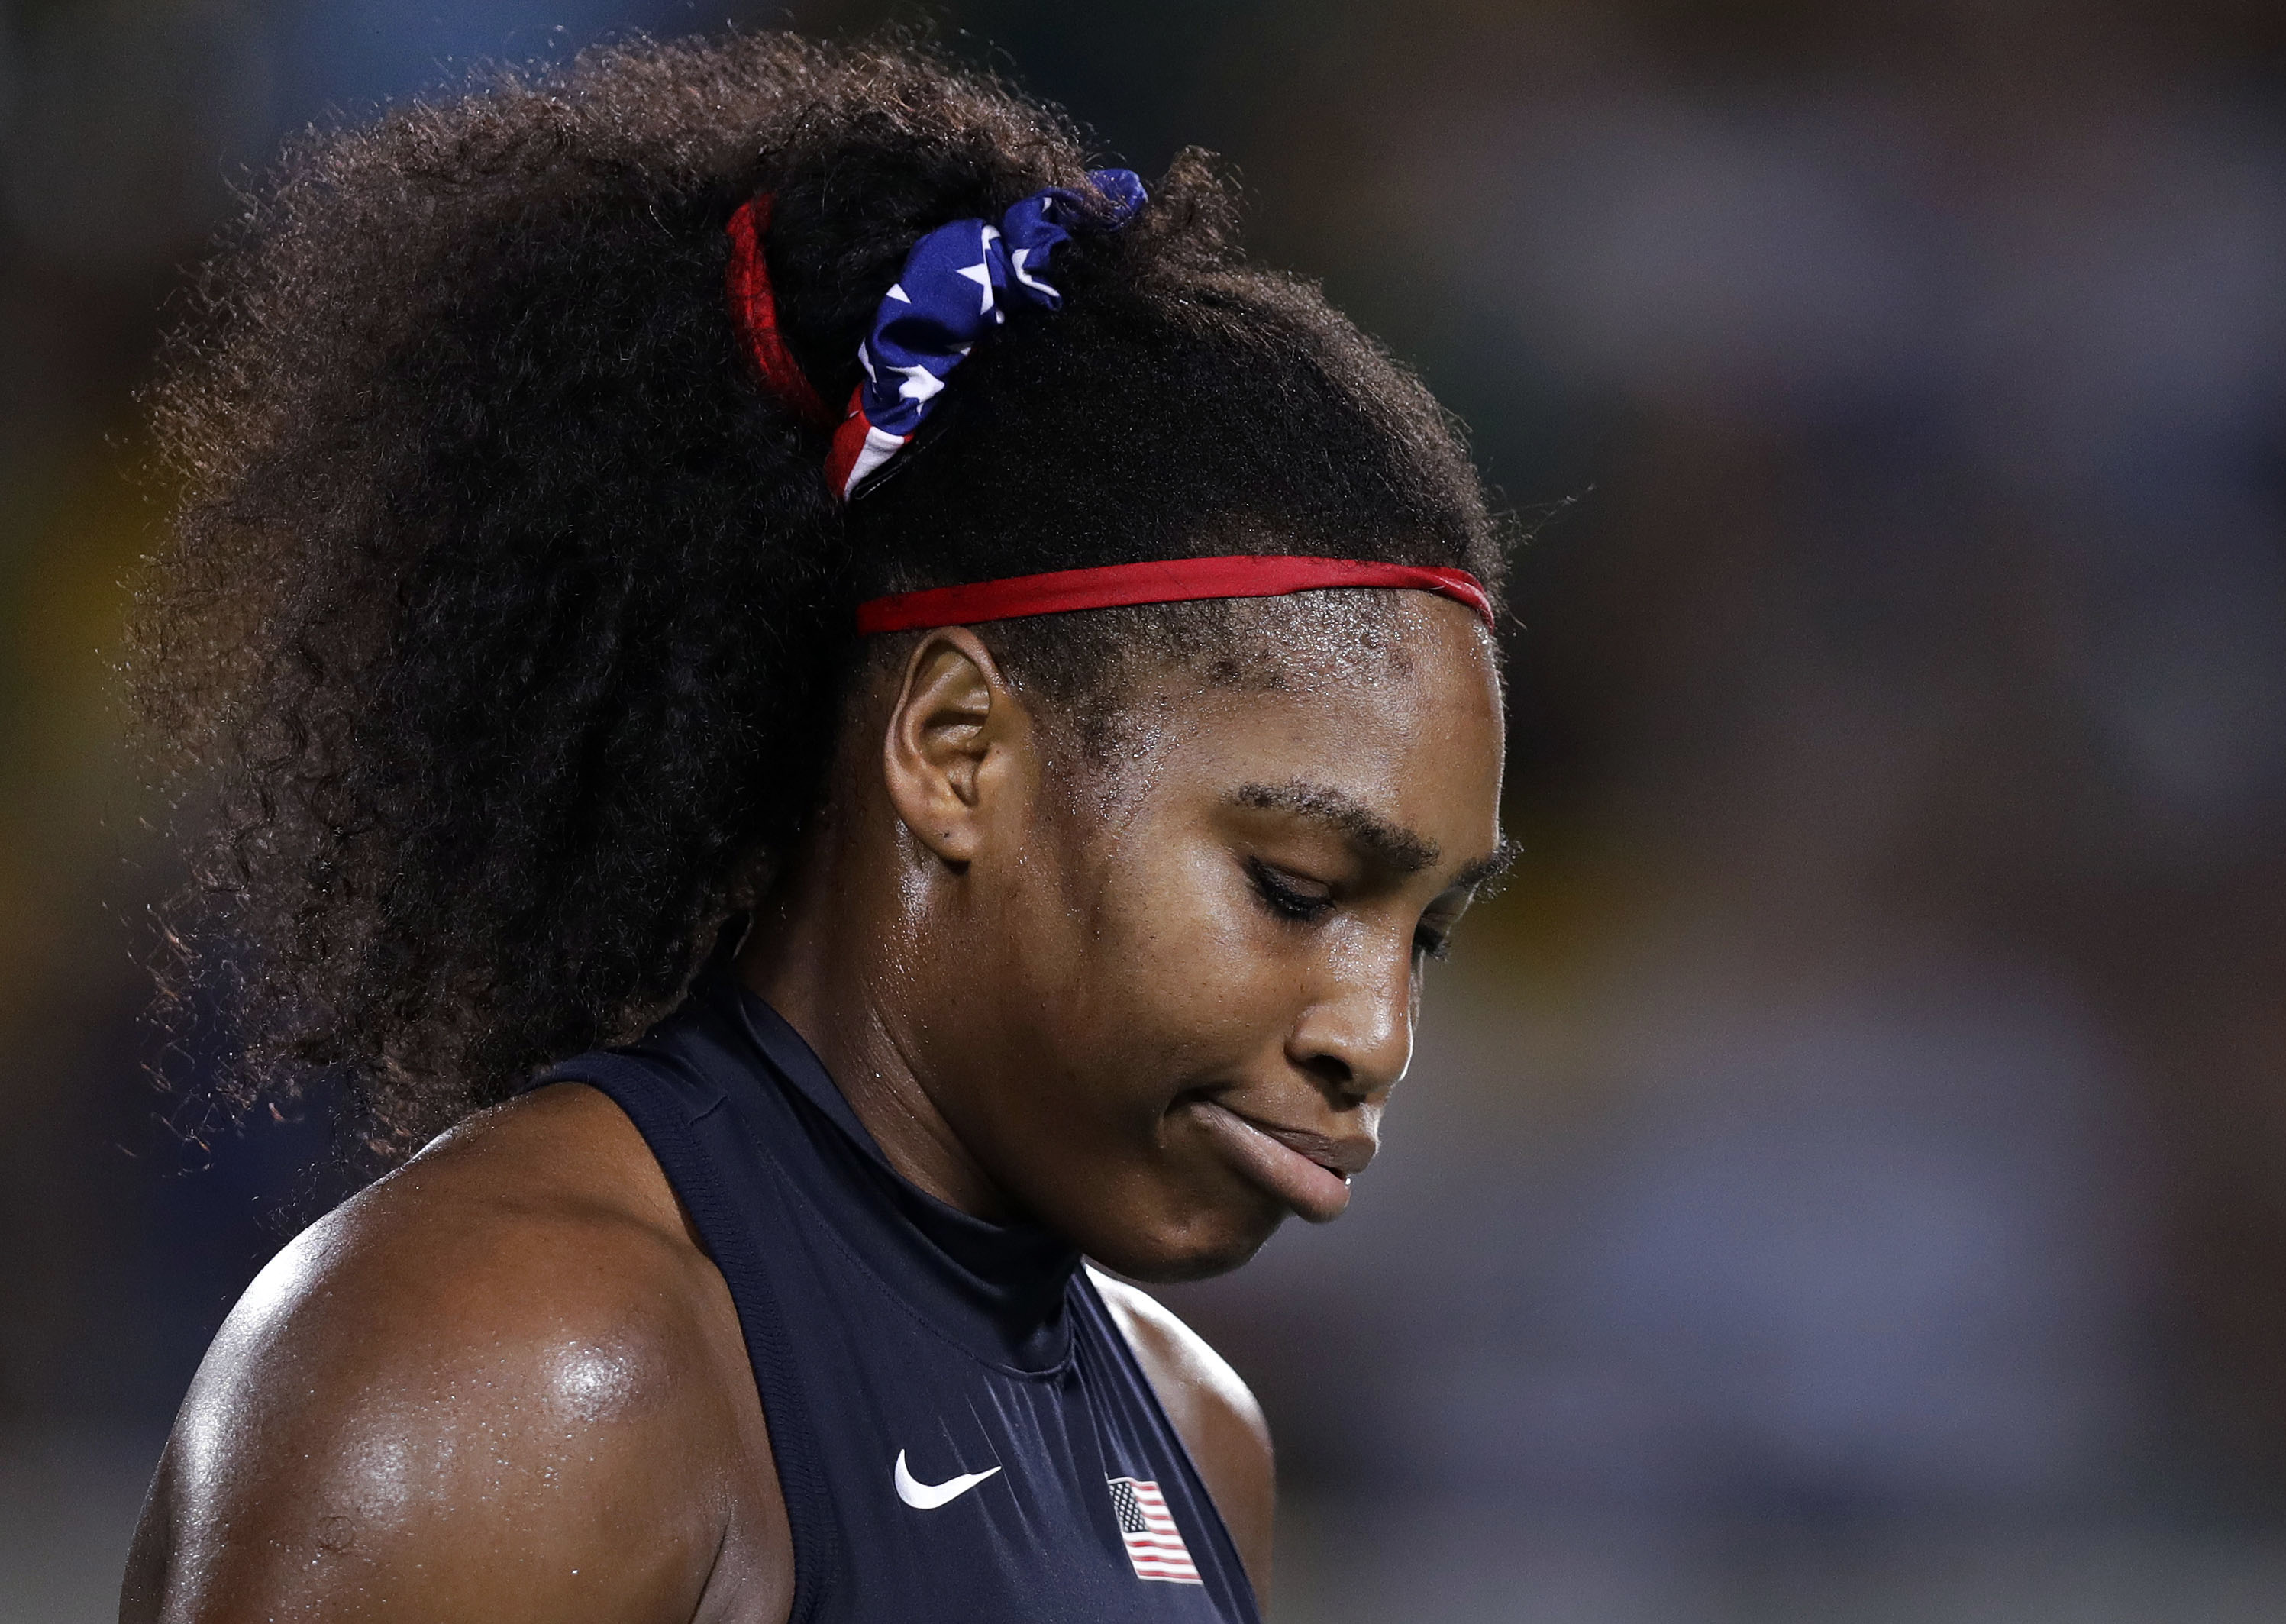 Serena Williams, of the United States, exhales during her loss to Elina Svitolina, of Ukraine, at the 2016 Summer Olympics in Rio de Janeiro, Brazil, Tuesday, Aug. 9, 2016. (AP Photo/Charles Krupa)